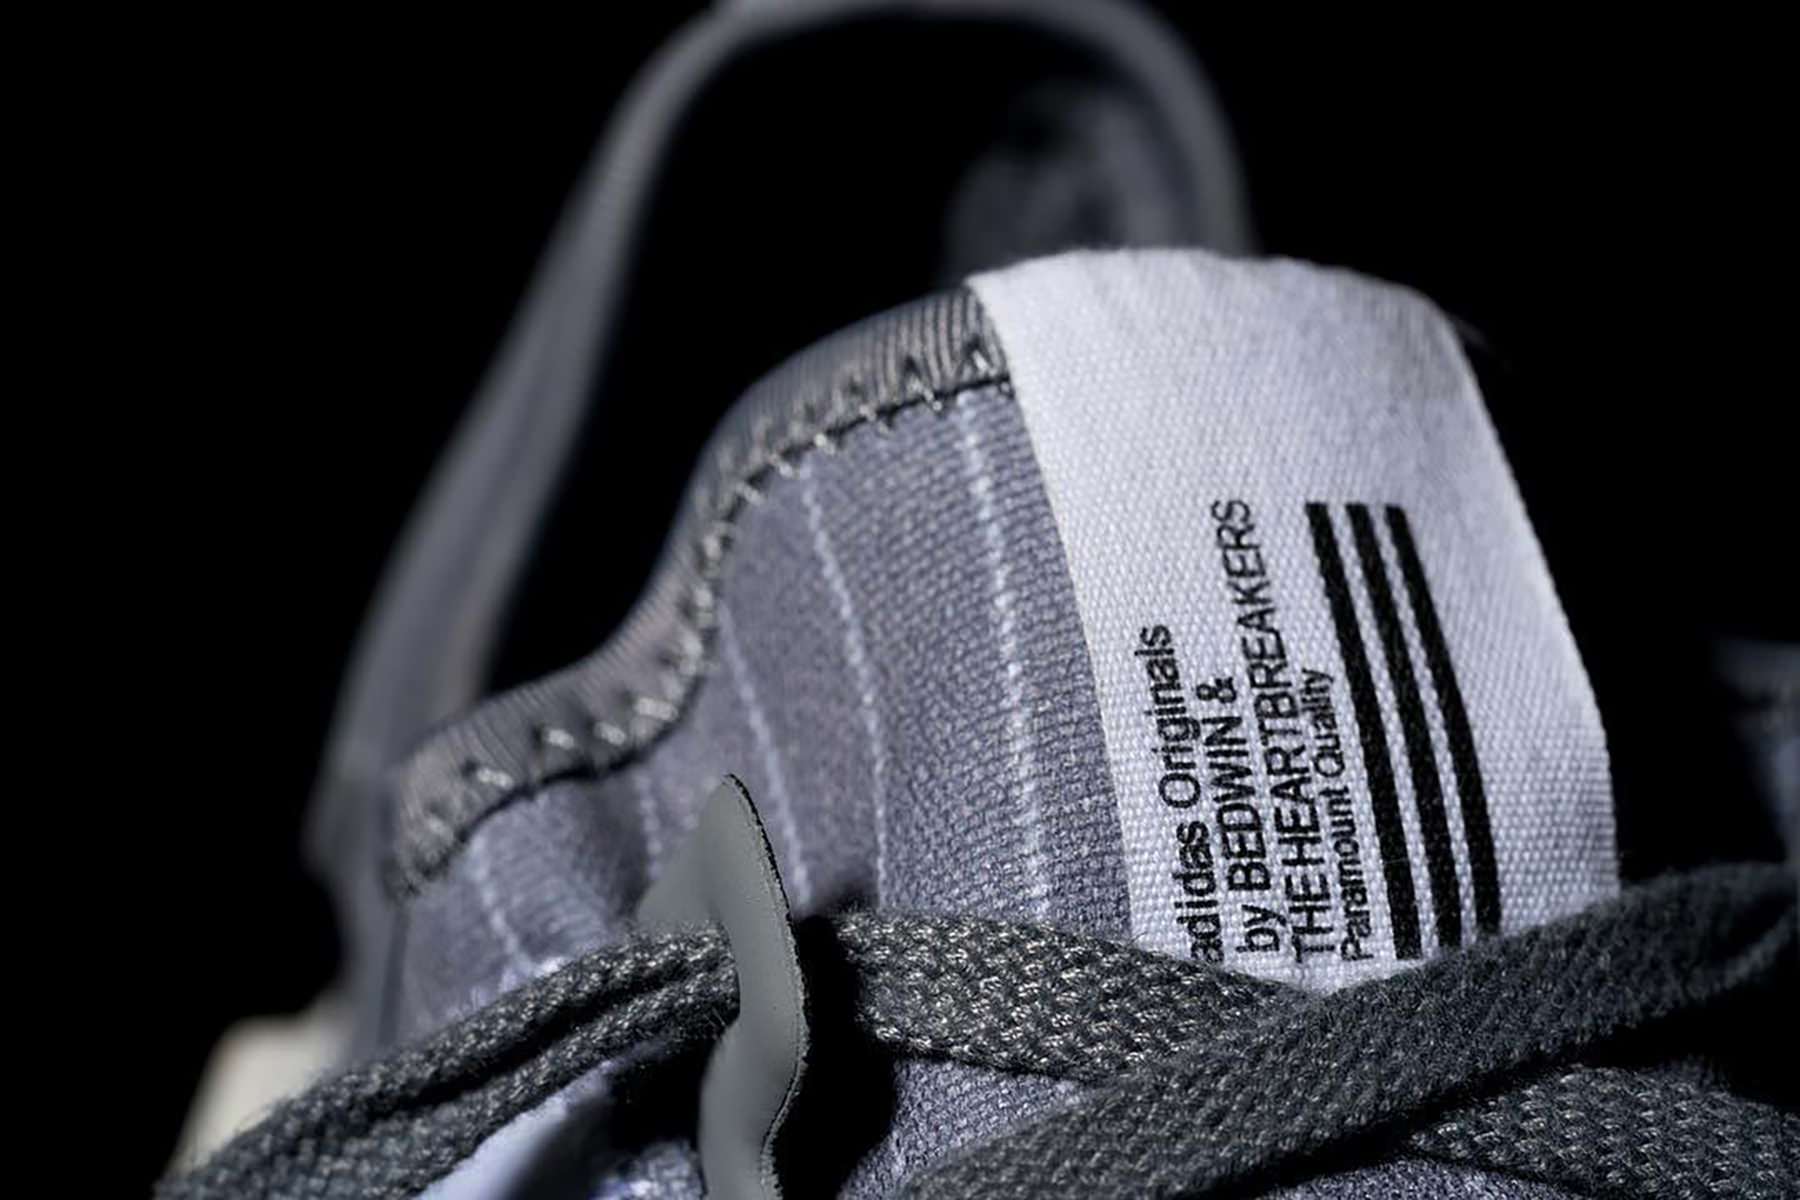 57d11550b5e3067a0d4c2dd1_bedwin-and-the-heartbreakers-adidas-nmd-r1-03